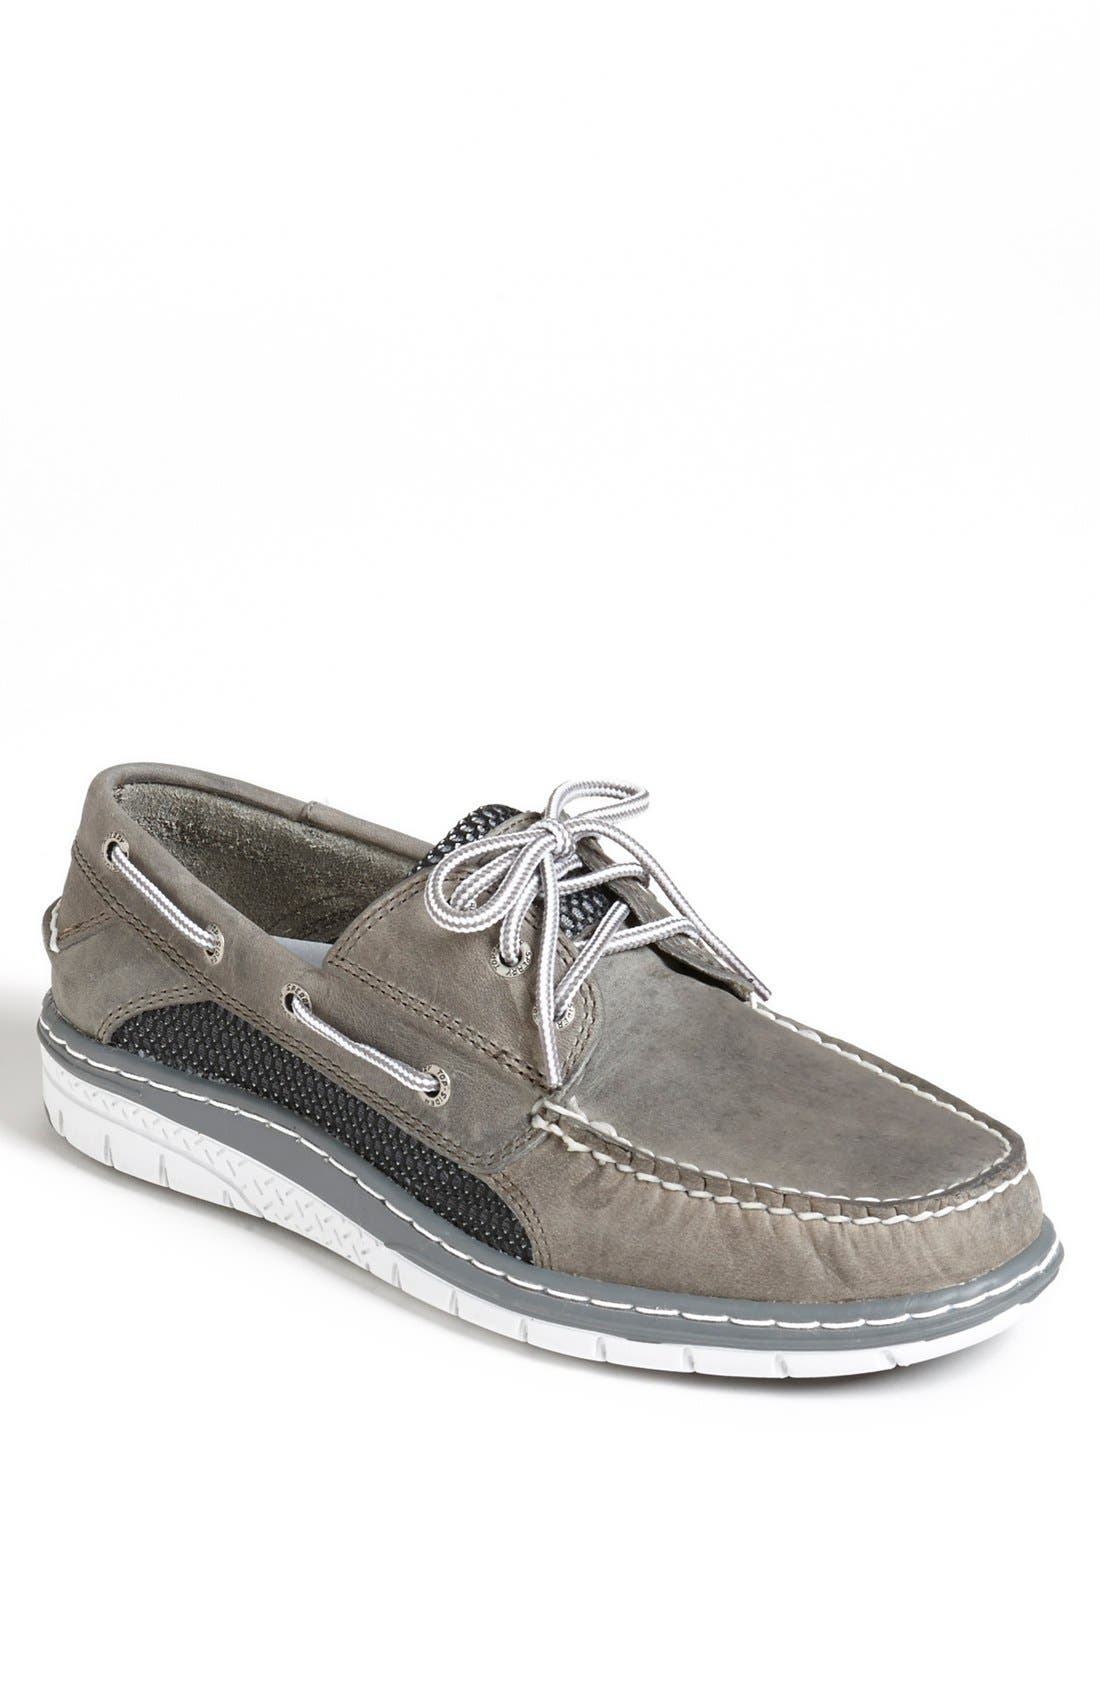 'Billfish Ultralite' Boat Shoe,                             Main thumbnail 5, color,